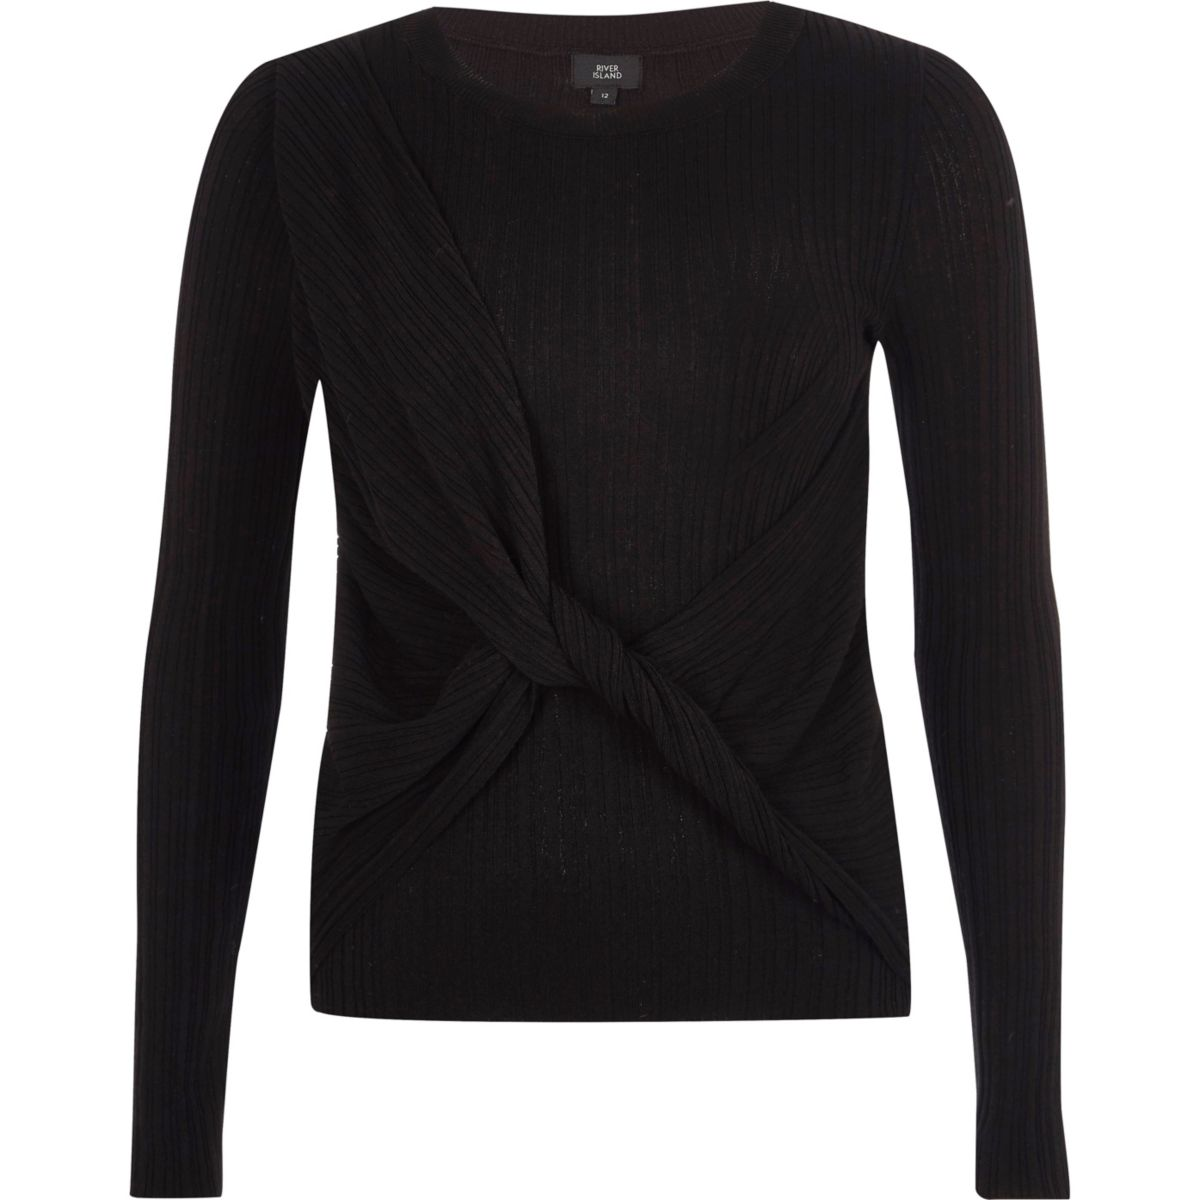 Black ribbed wrap knot front knit sweater